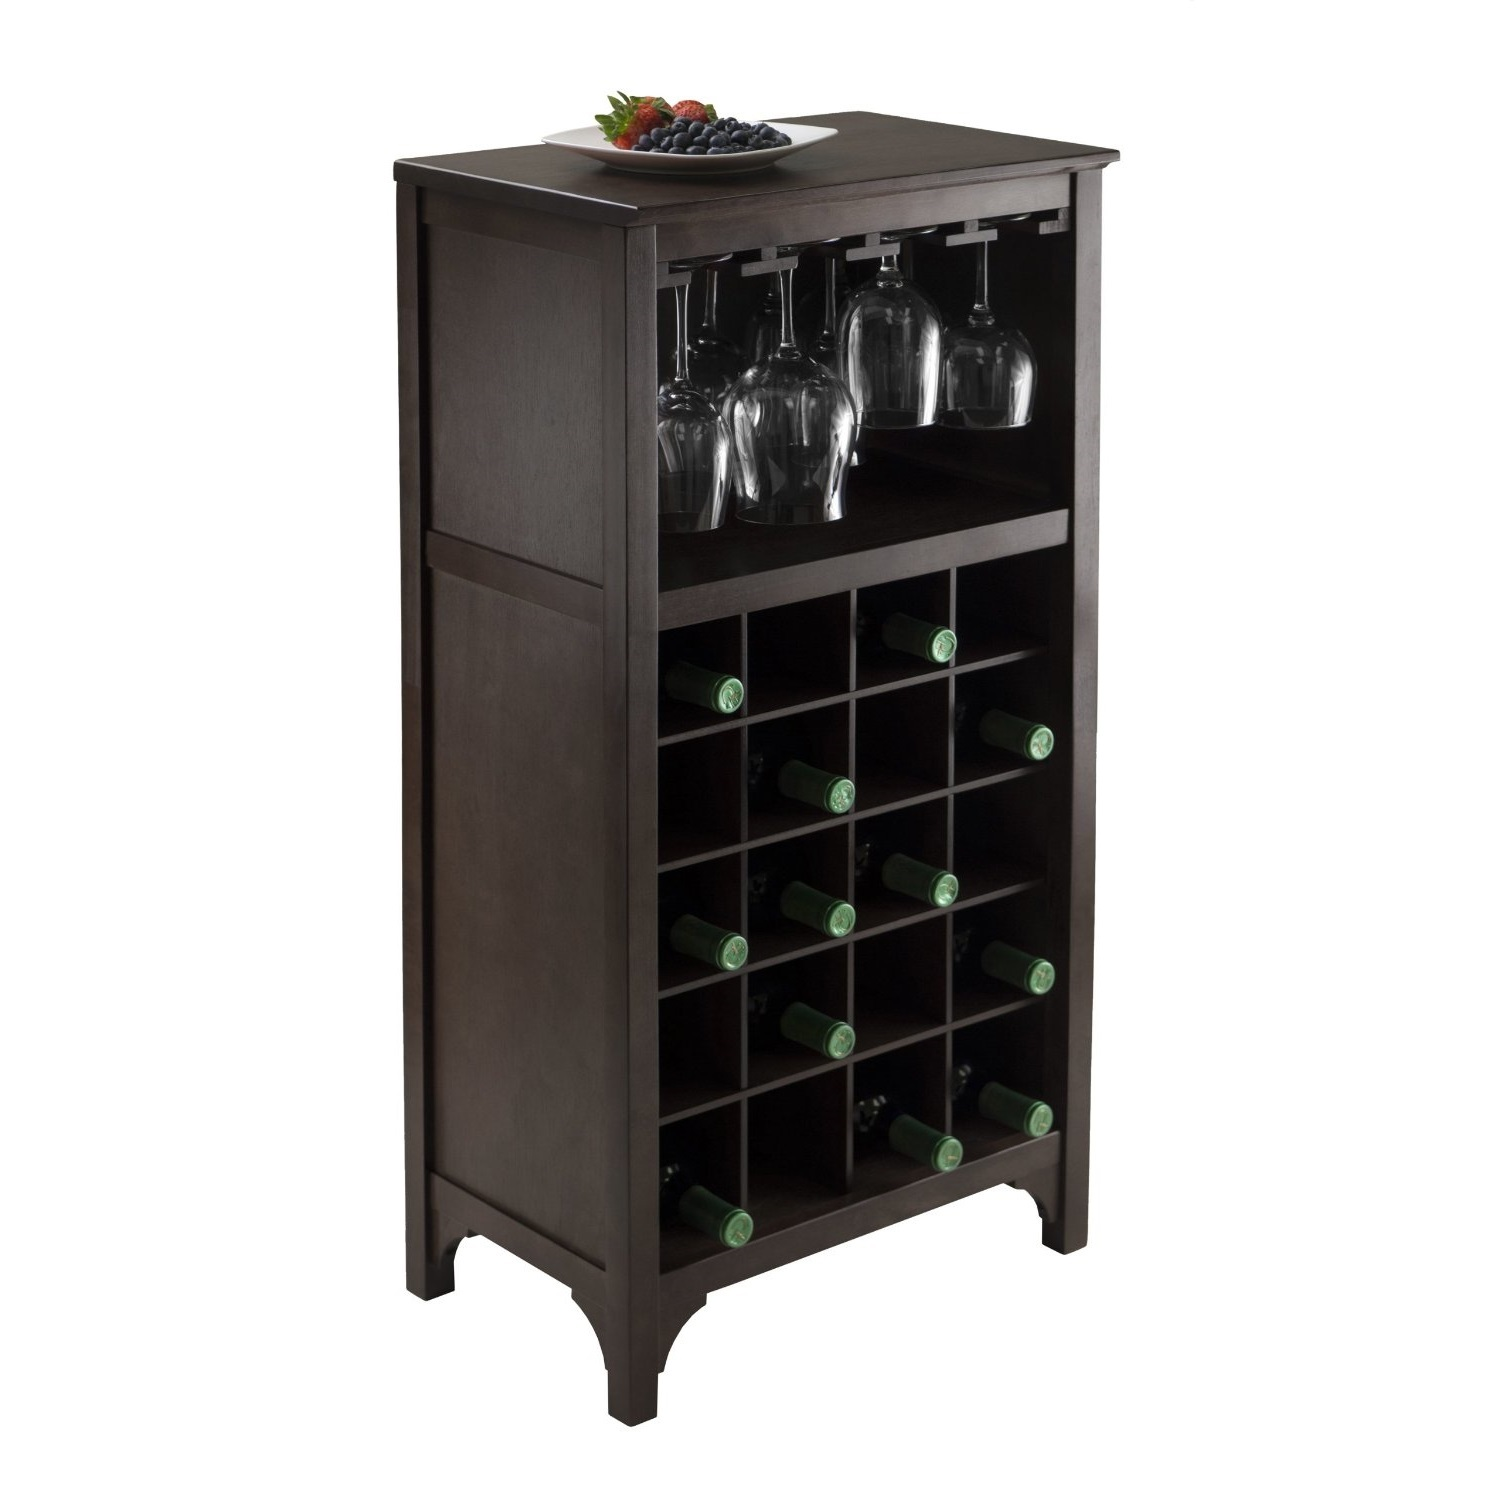 Wood Wine Rack Espresso Glass Storage And 50 Similar Items